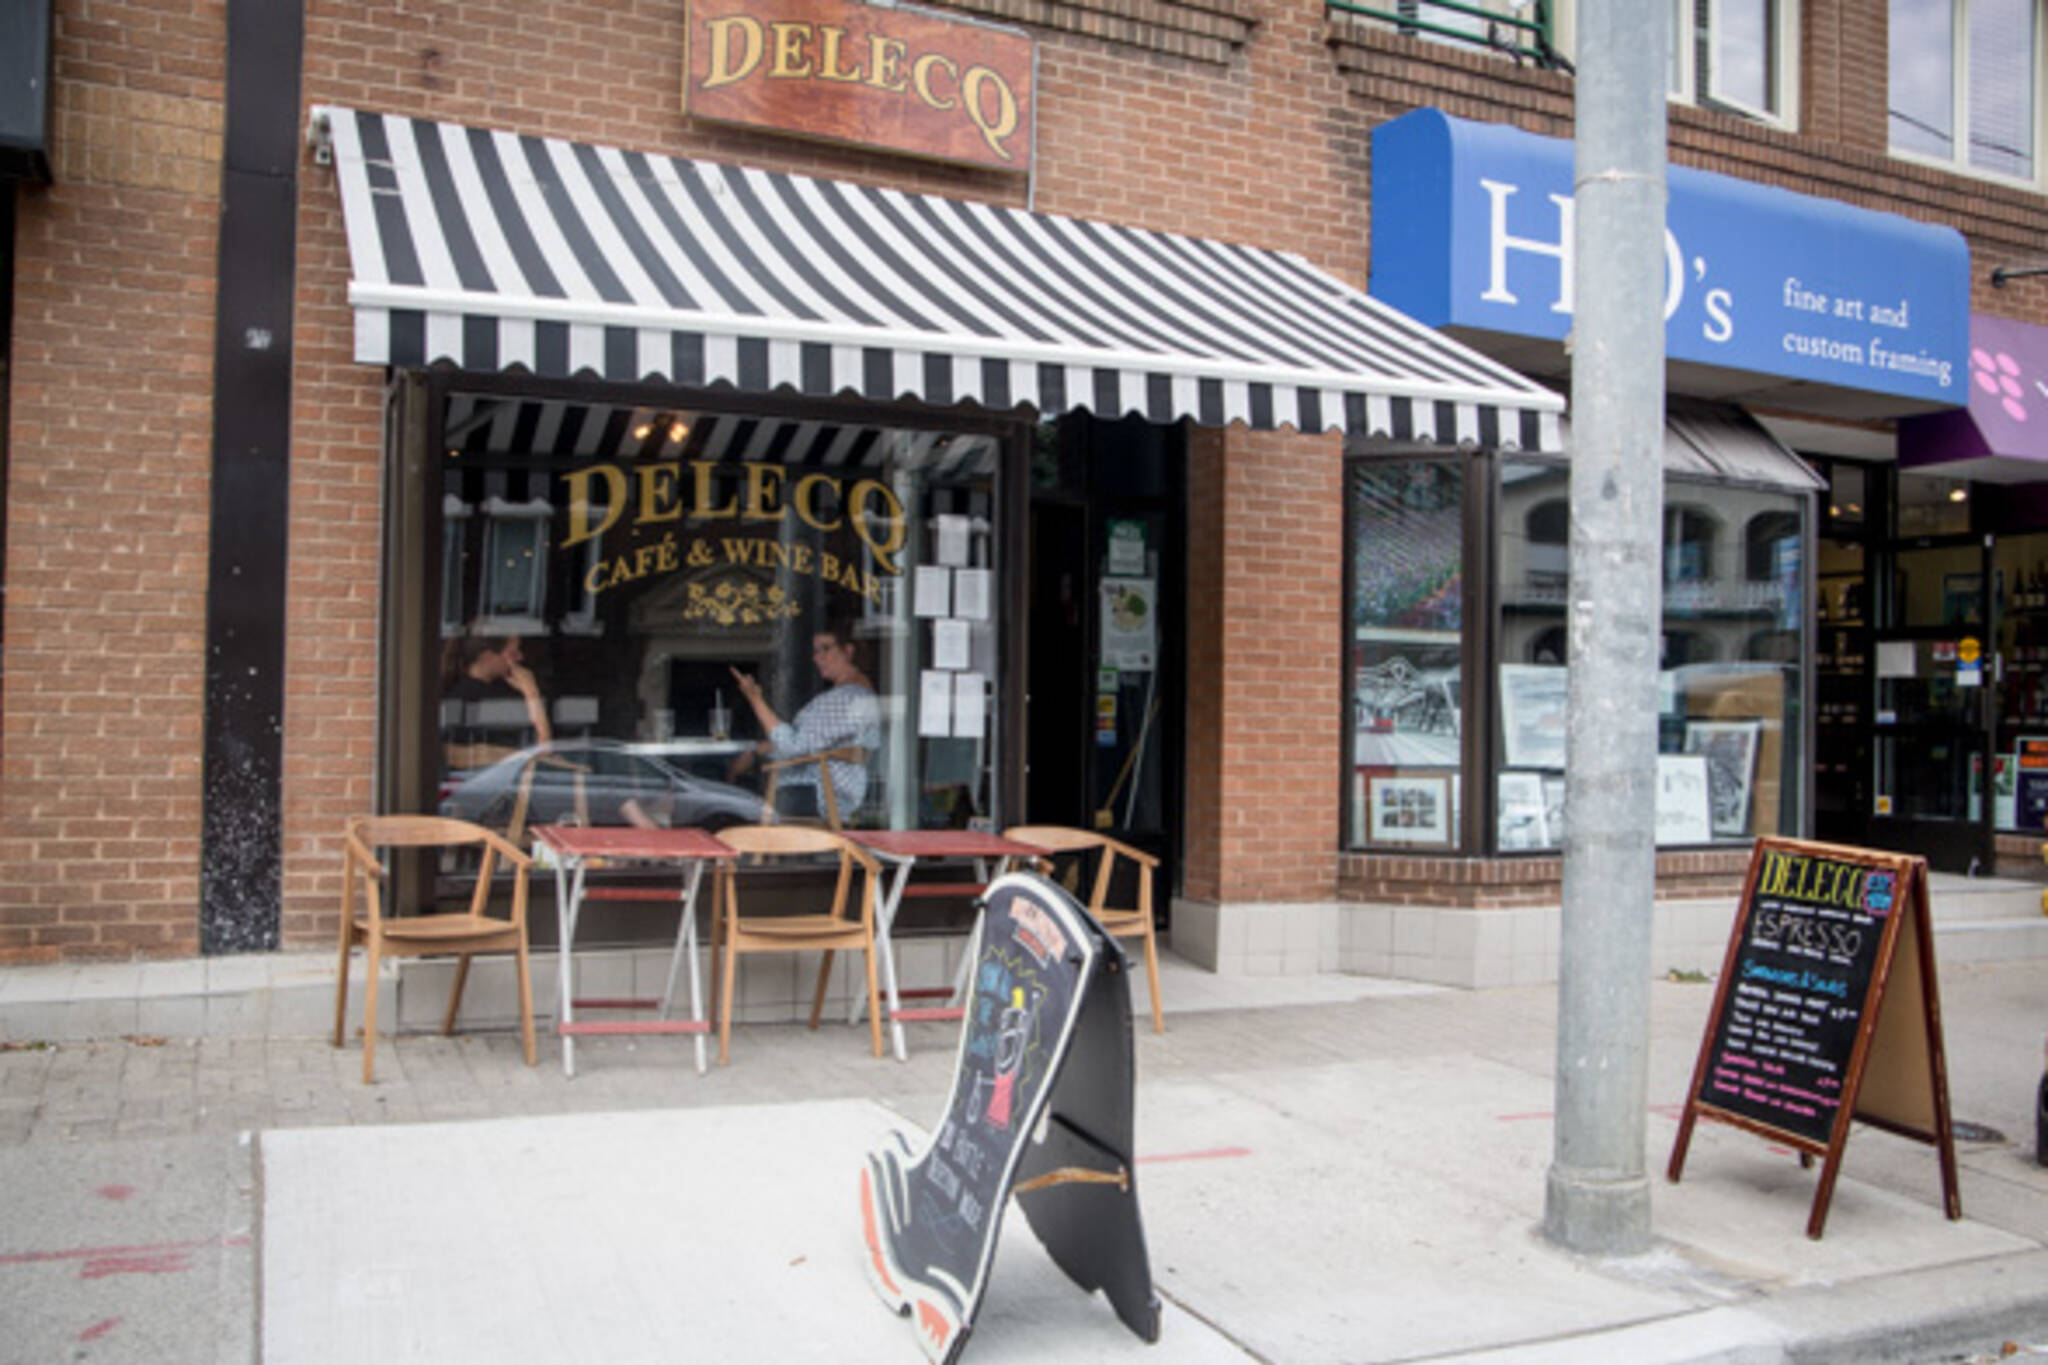 delecq cafe and wine bar toronto